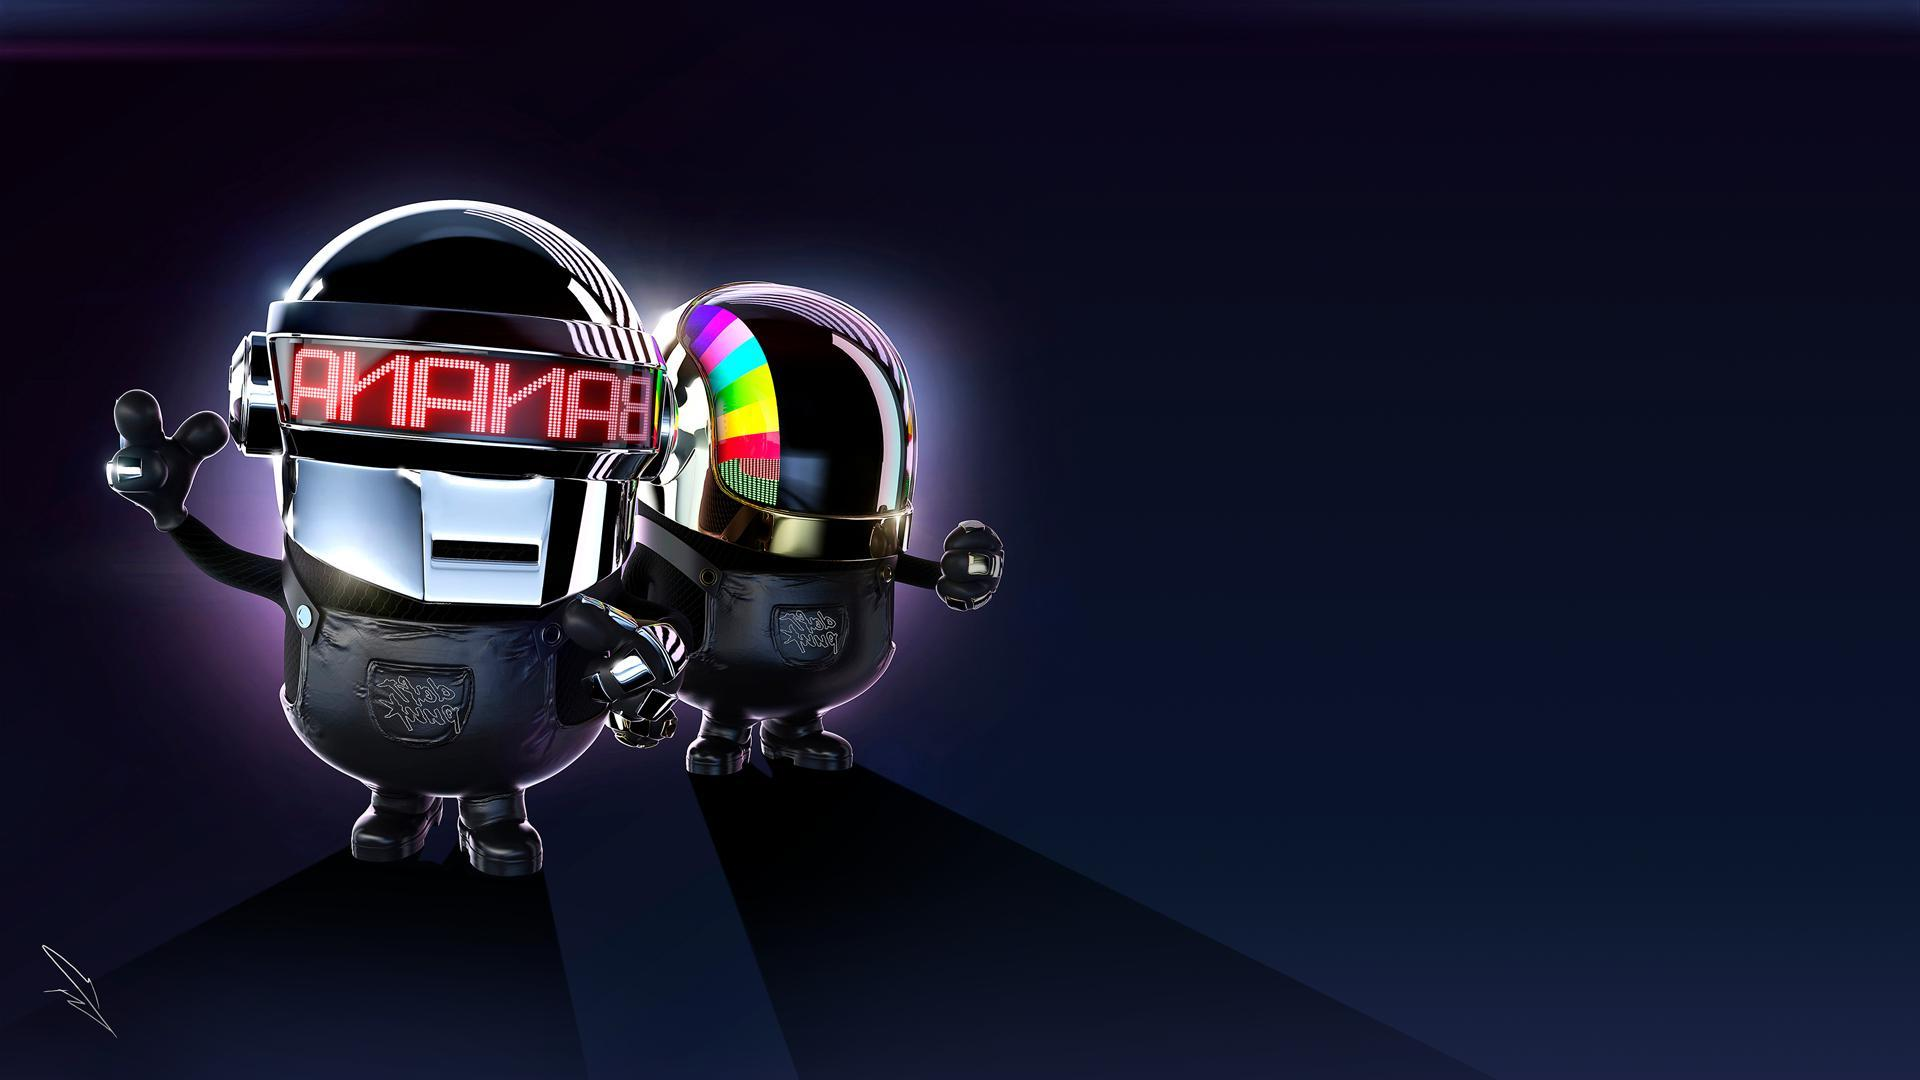 music daft punk daft punk celebrity music wallpaper